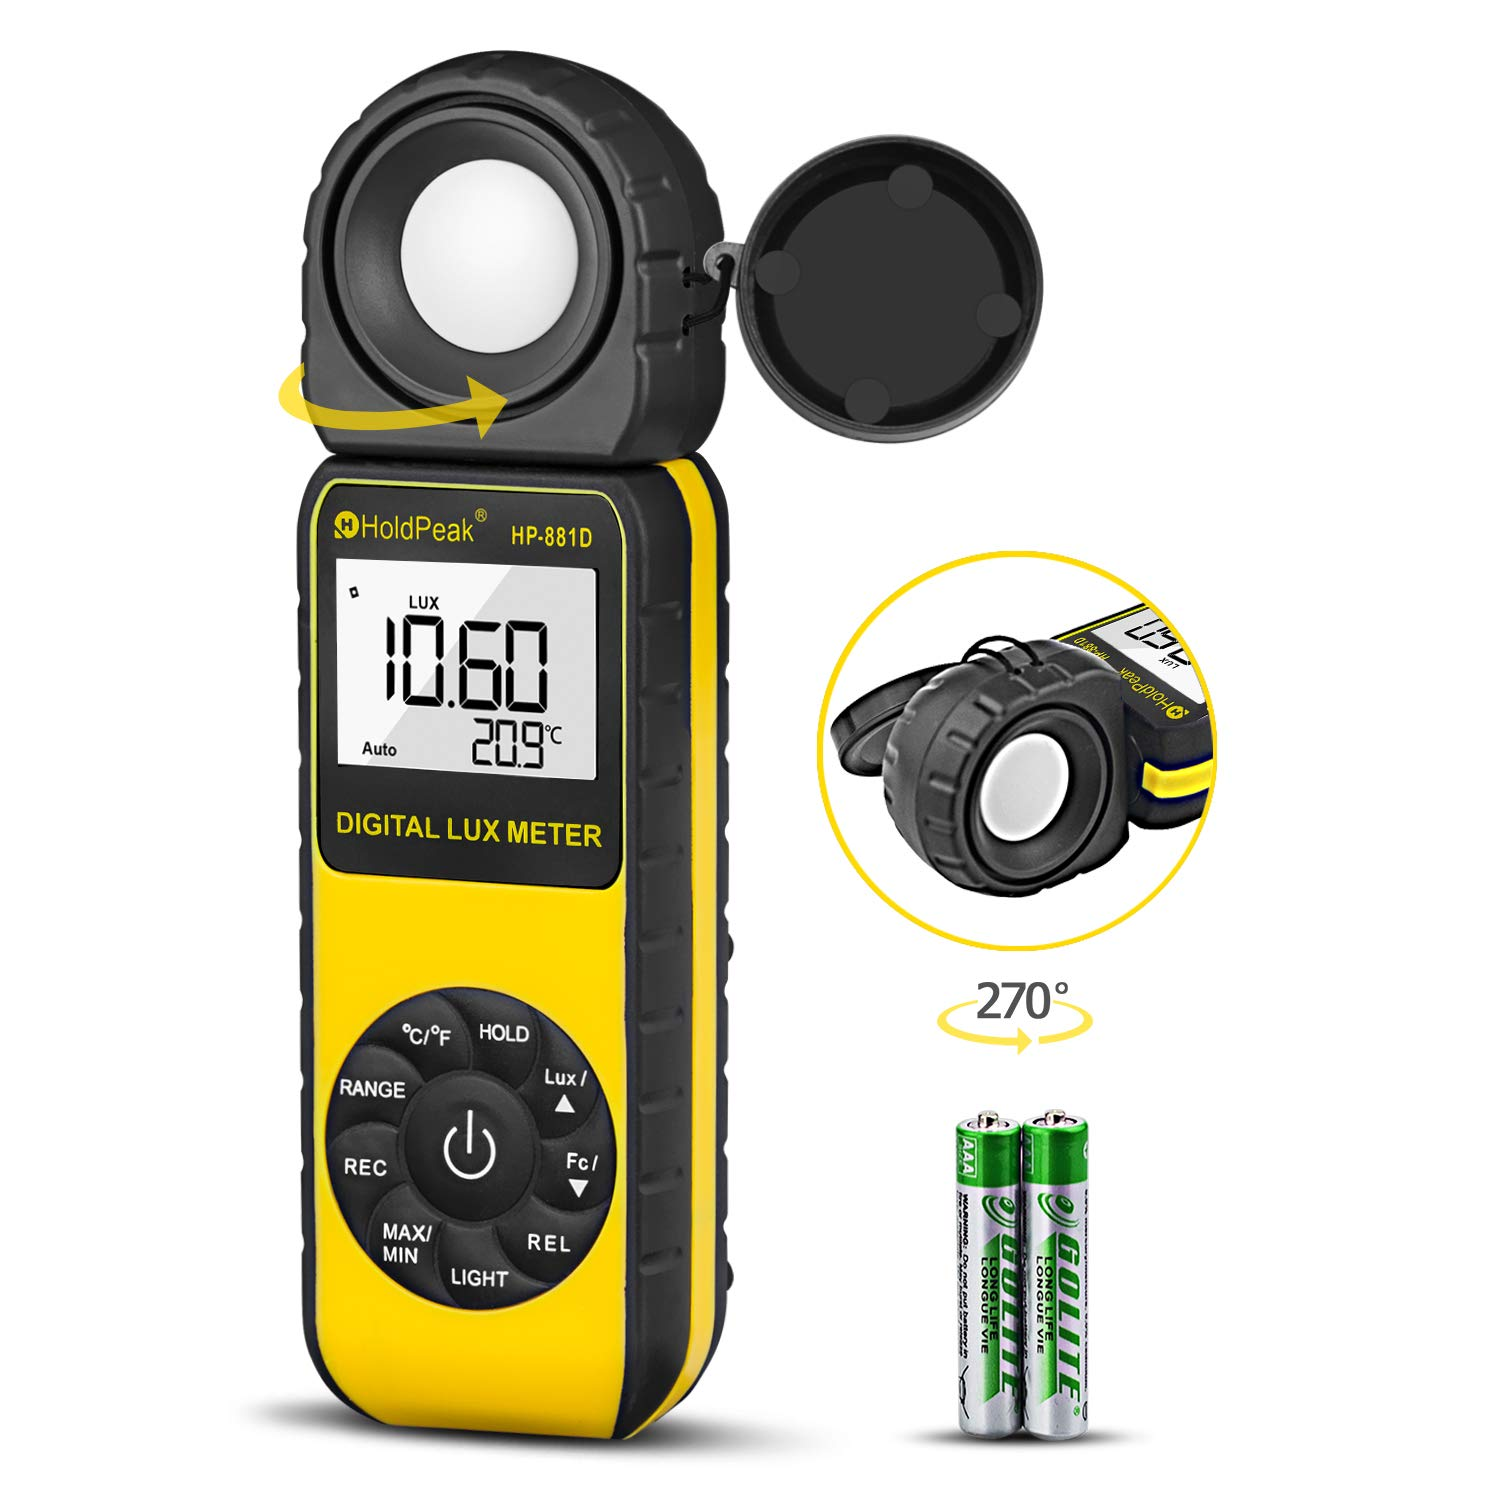 HOLDPEAK 881D Digital Illuminance/Light Meter with 0.01-400,000 Lux(1-40,000 FC) 270 ° Rotate Sensor Head, MAX/MIN,Backlight,Data Hold&Storage,lumens Meter for Plants and led Lights by H HOLDPEAK